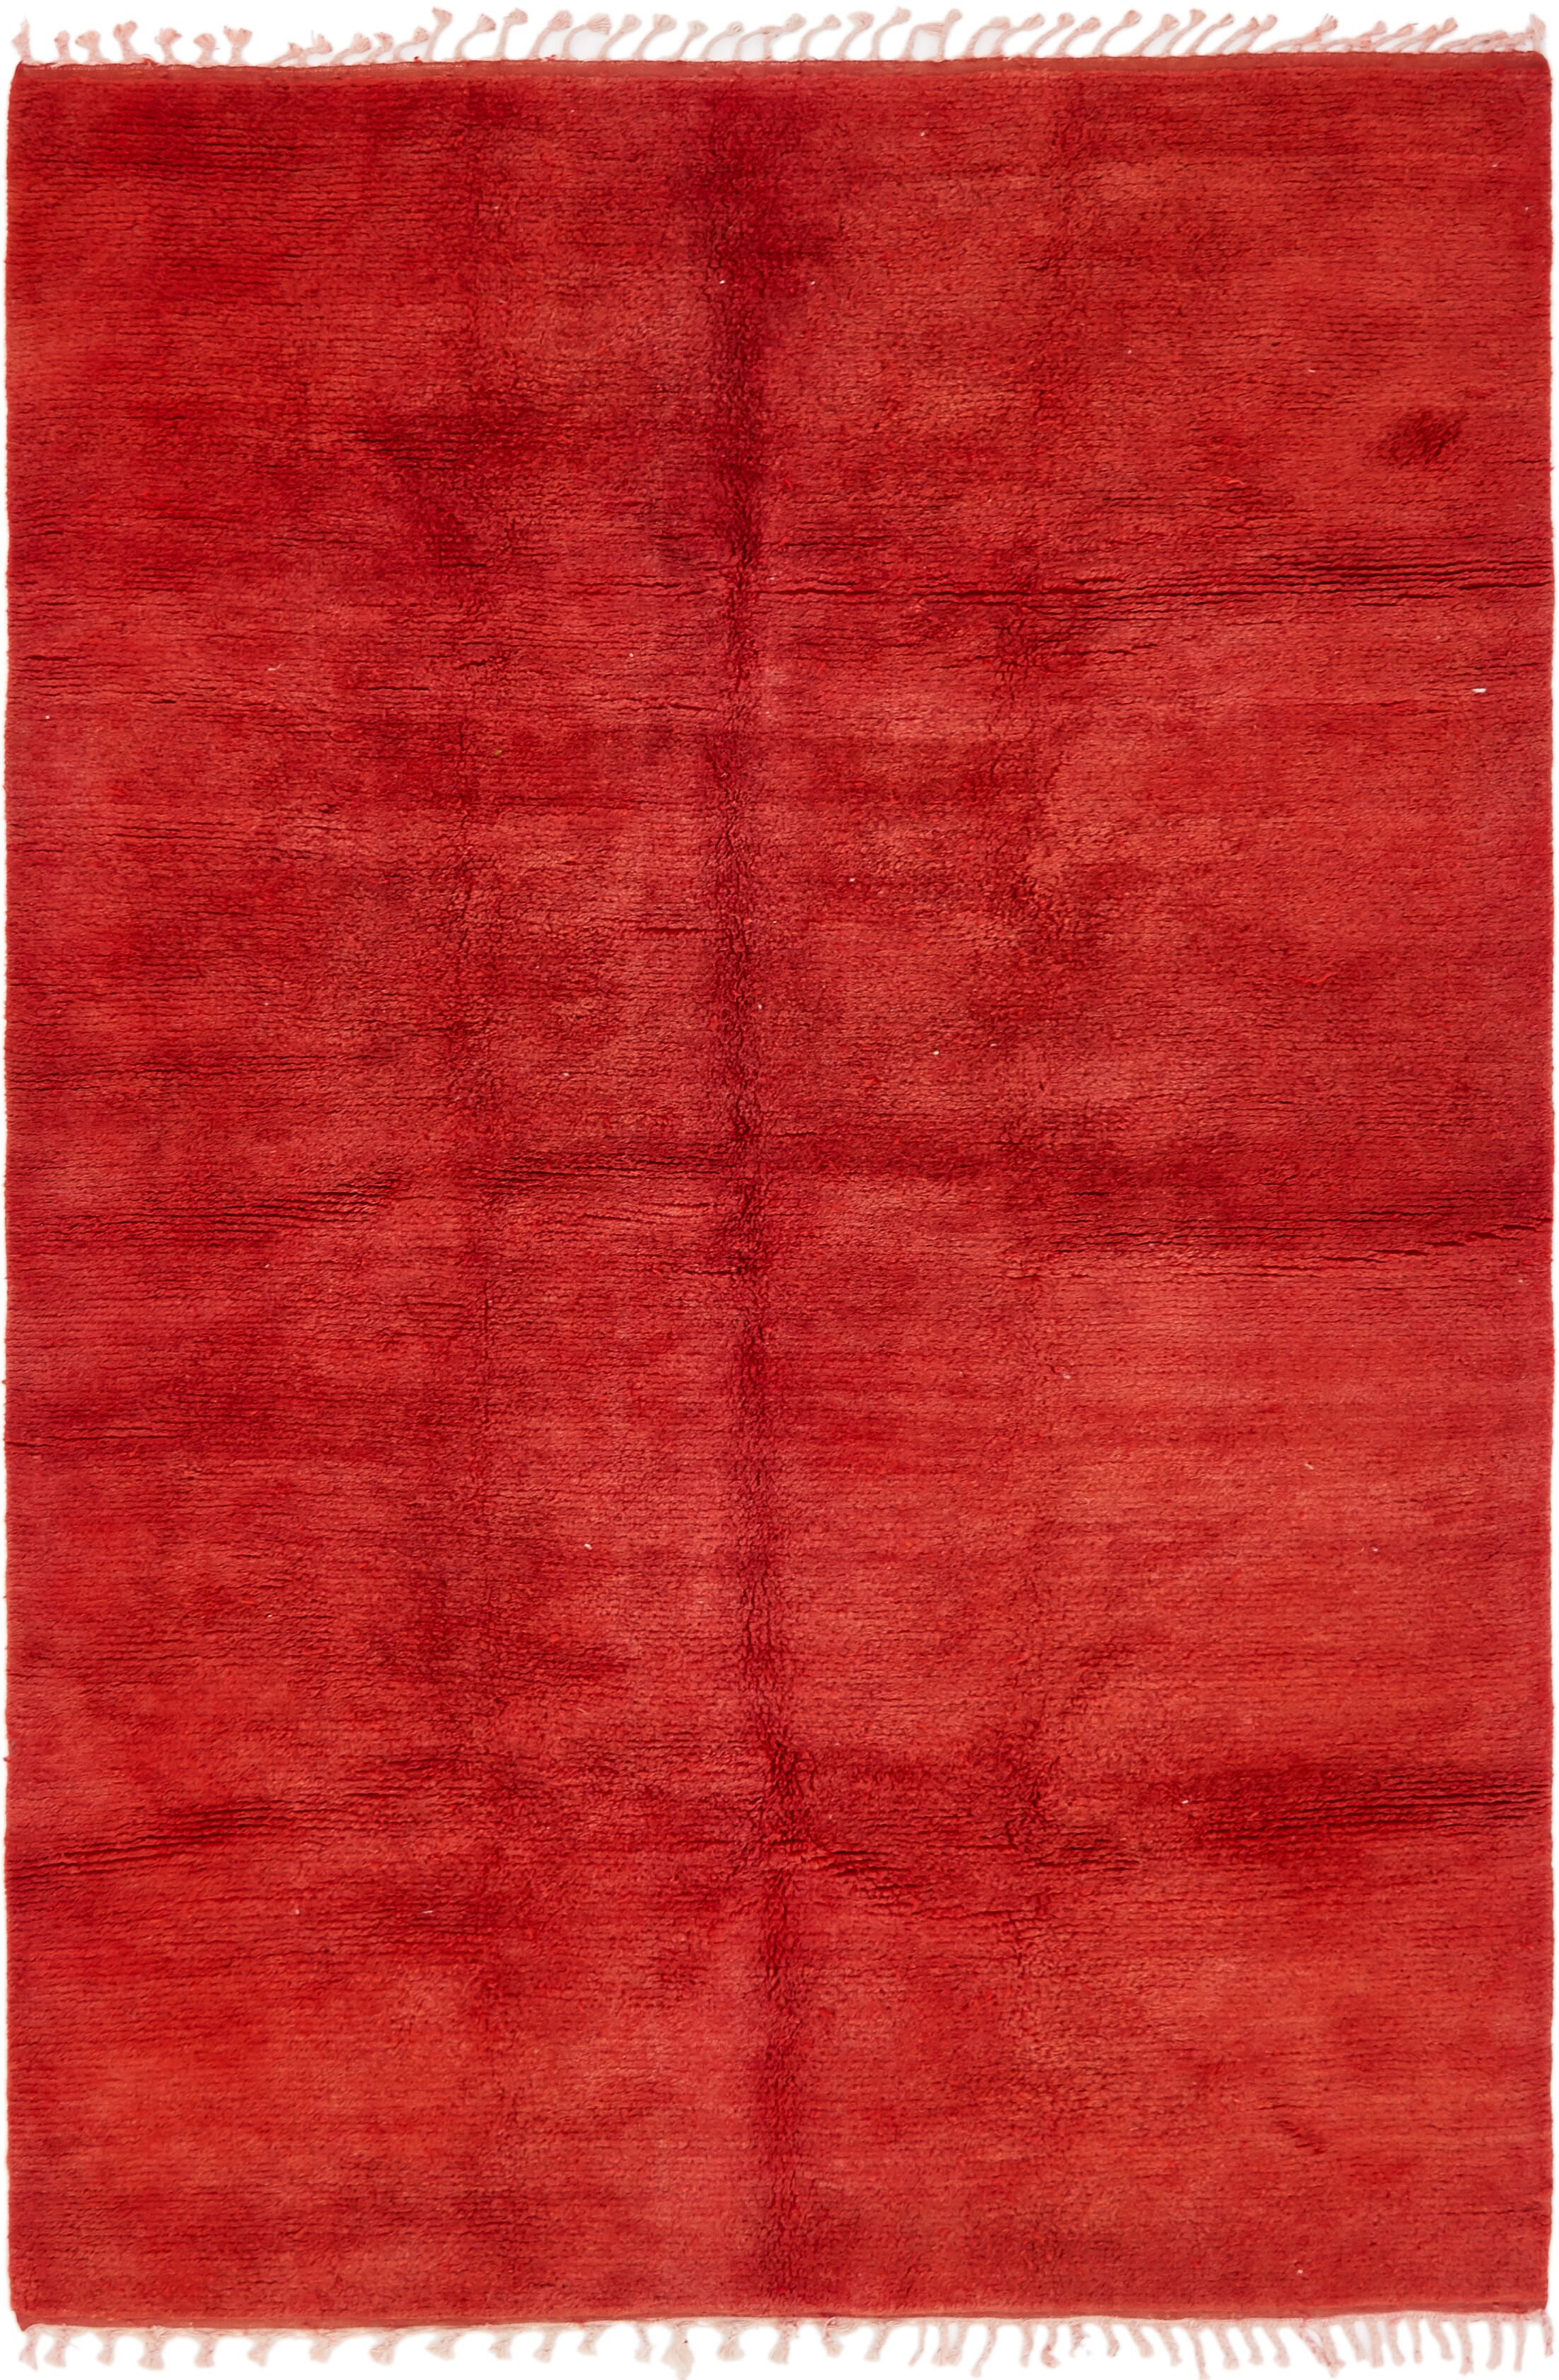 One-of-a-Kind Hawkinge Hand-Knotted Wool Red Area Rug